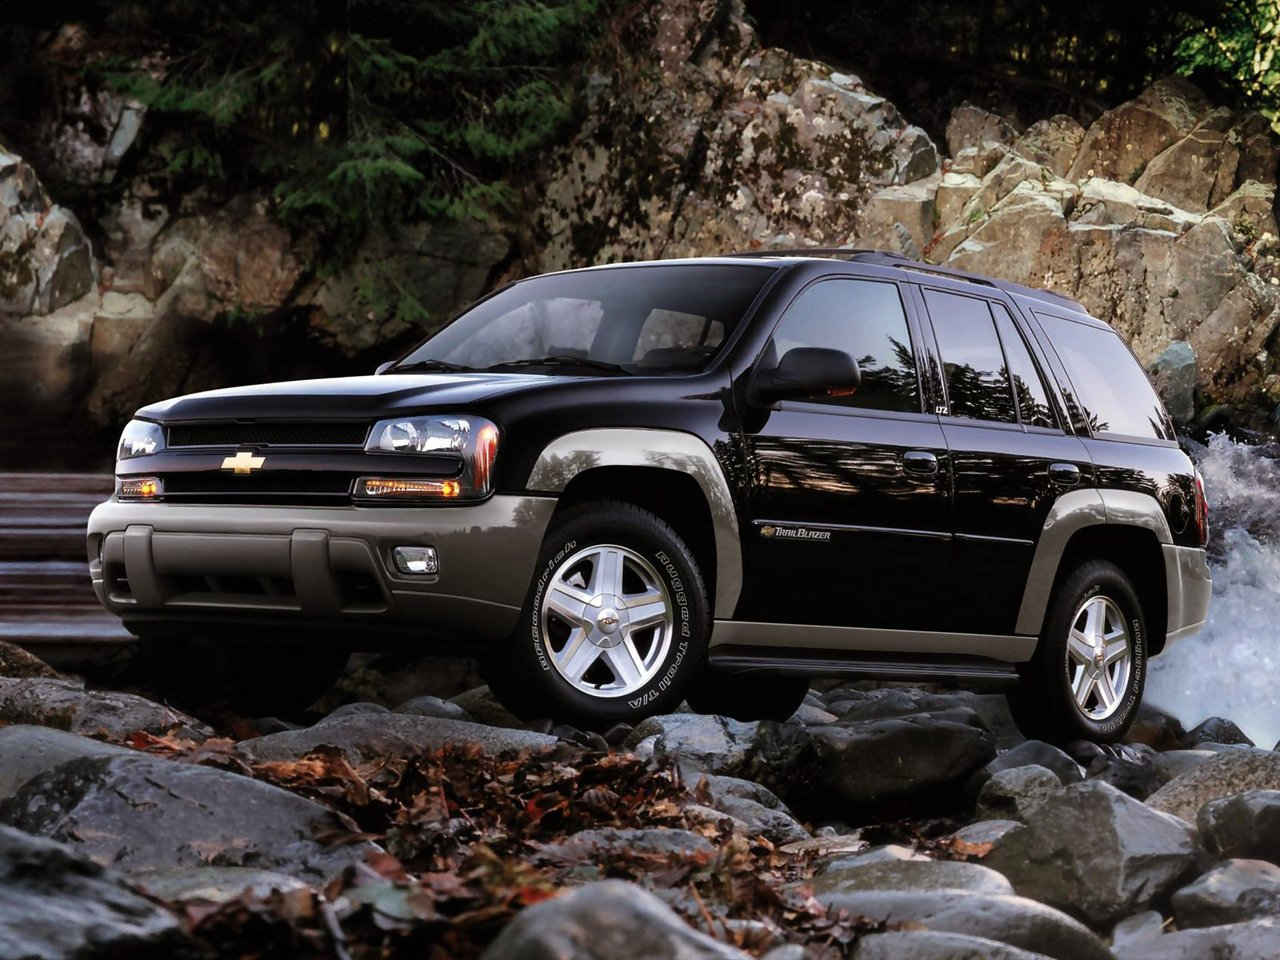 Автомобиль Chevrolet TrailBlazer